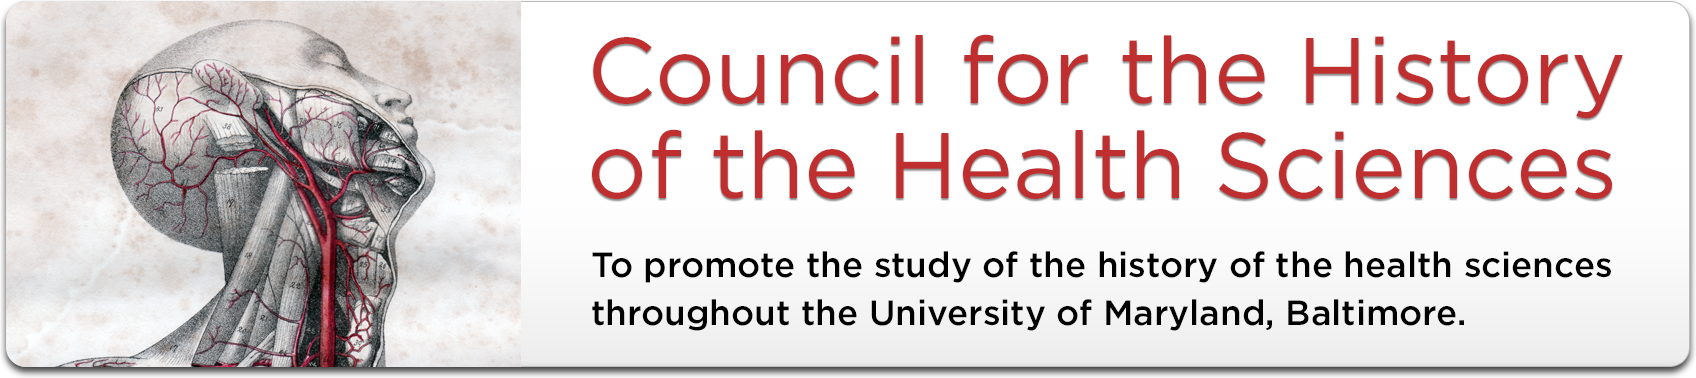 Council for the History of the Health Sciences